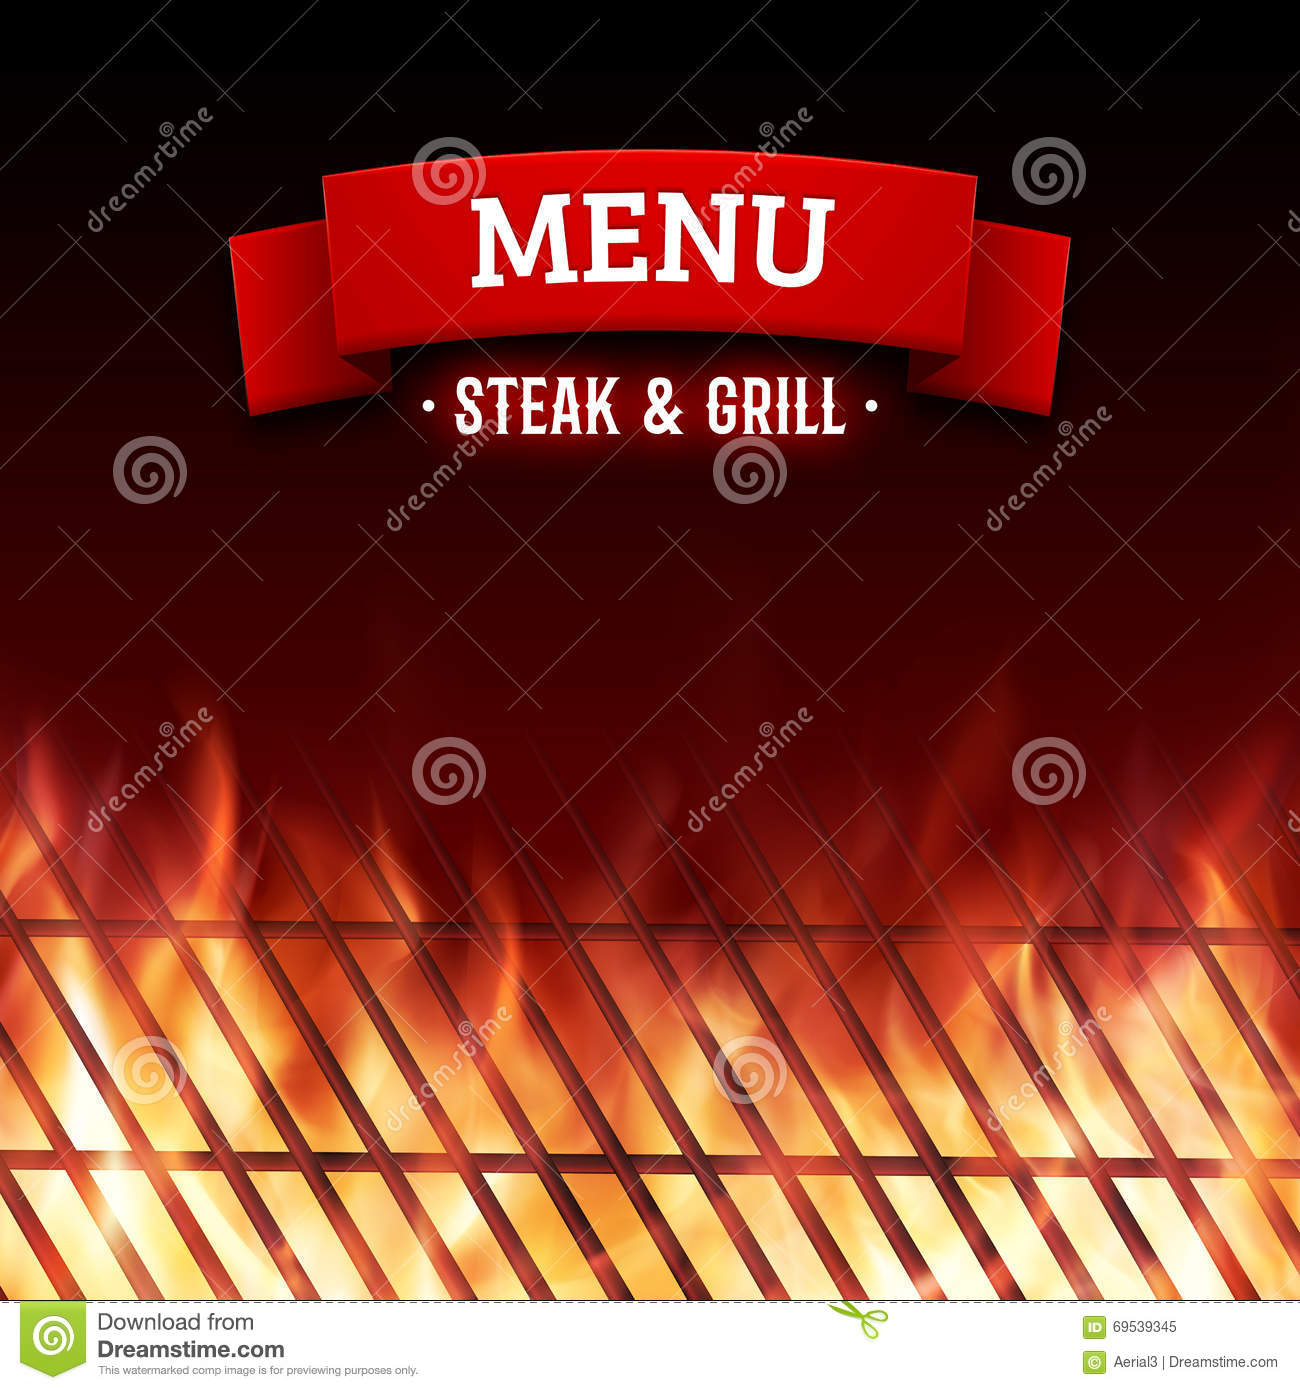 Steak And Grill House Menu Vector Background Stock Vector